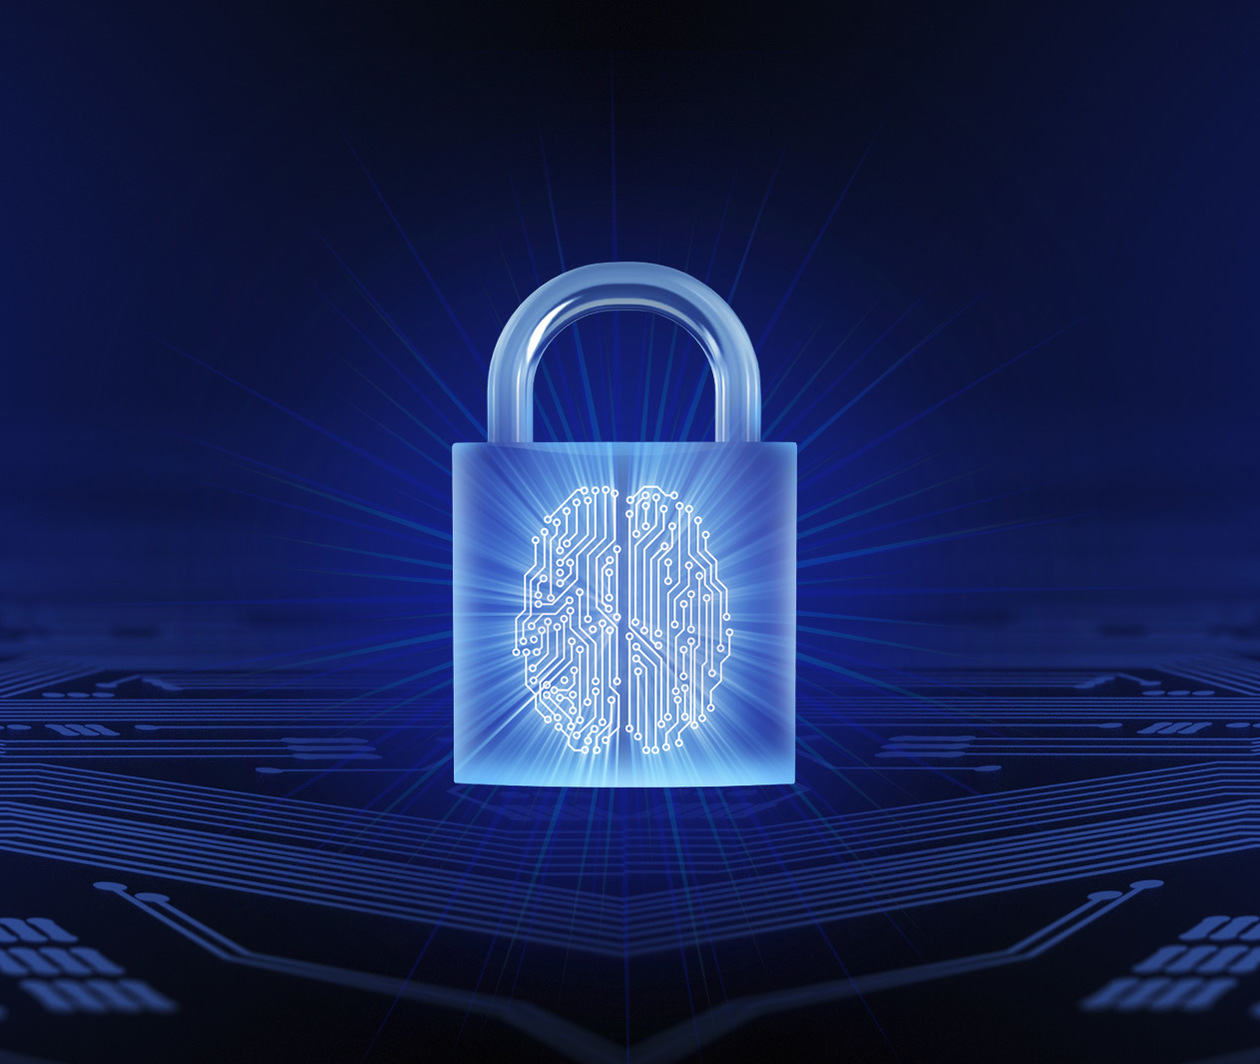 Cyber Security: Safety at Home, Online, in Life